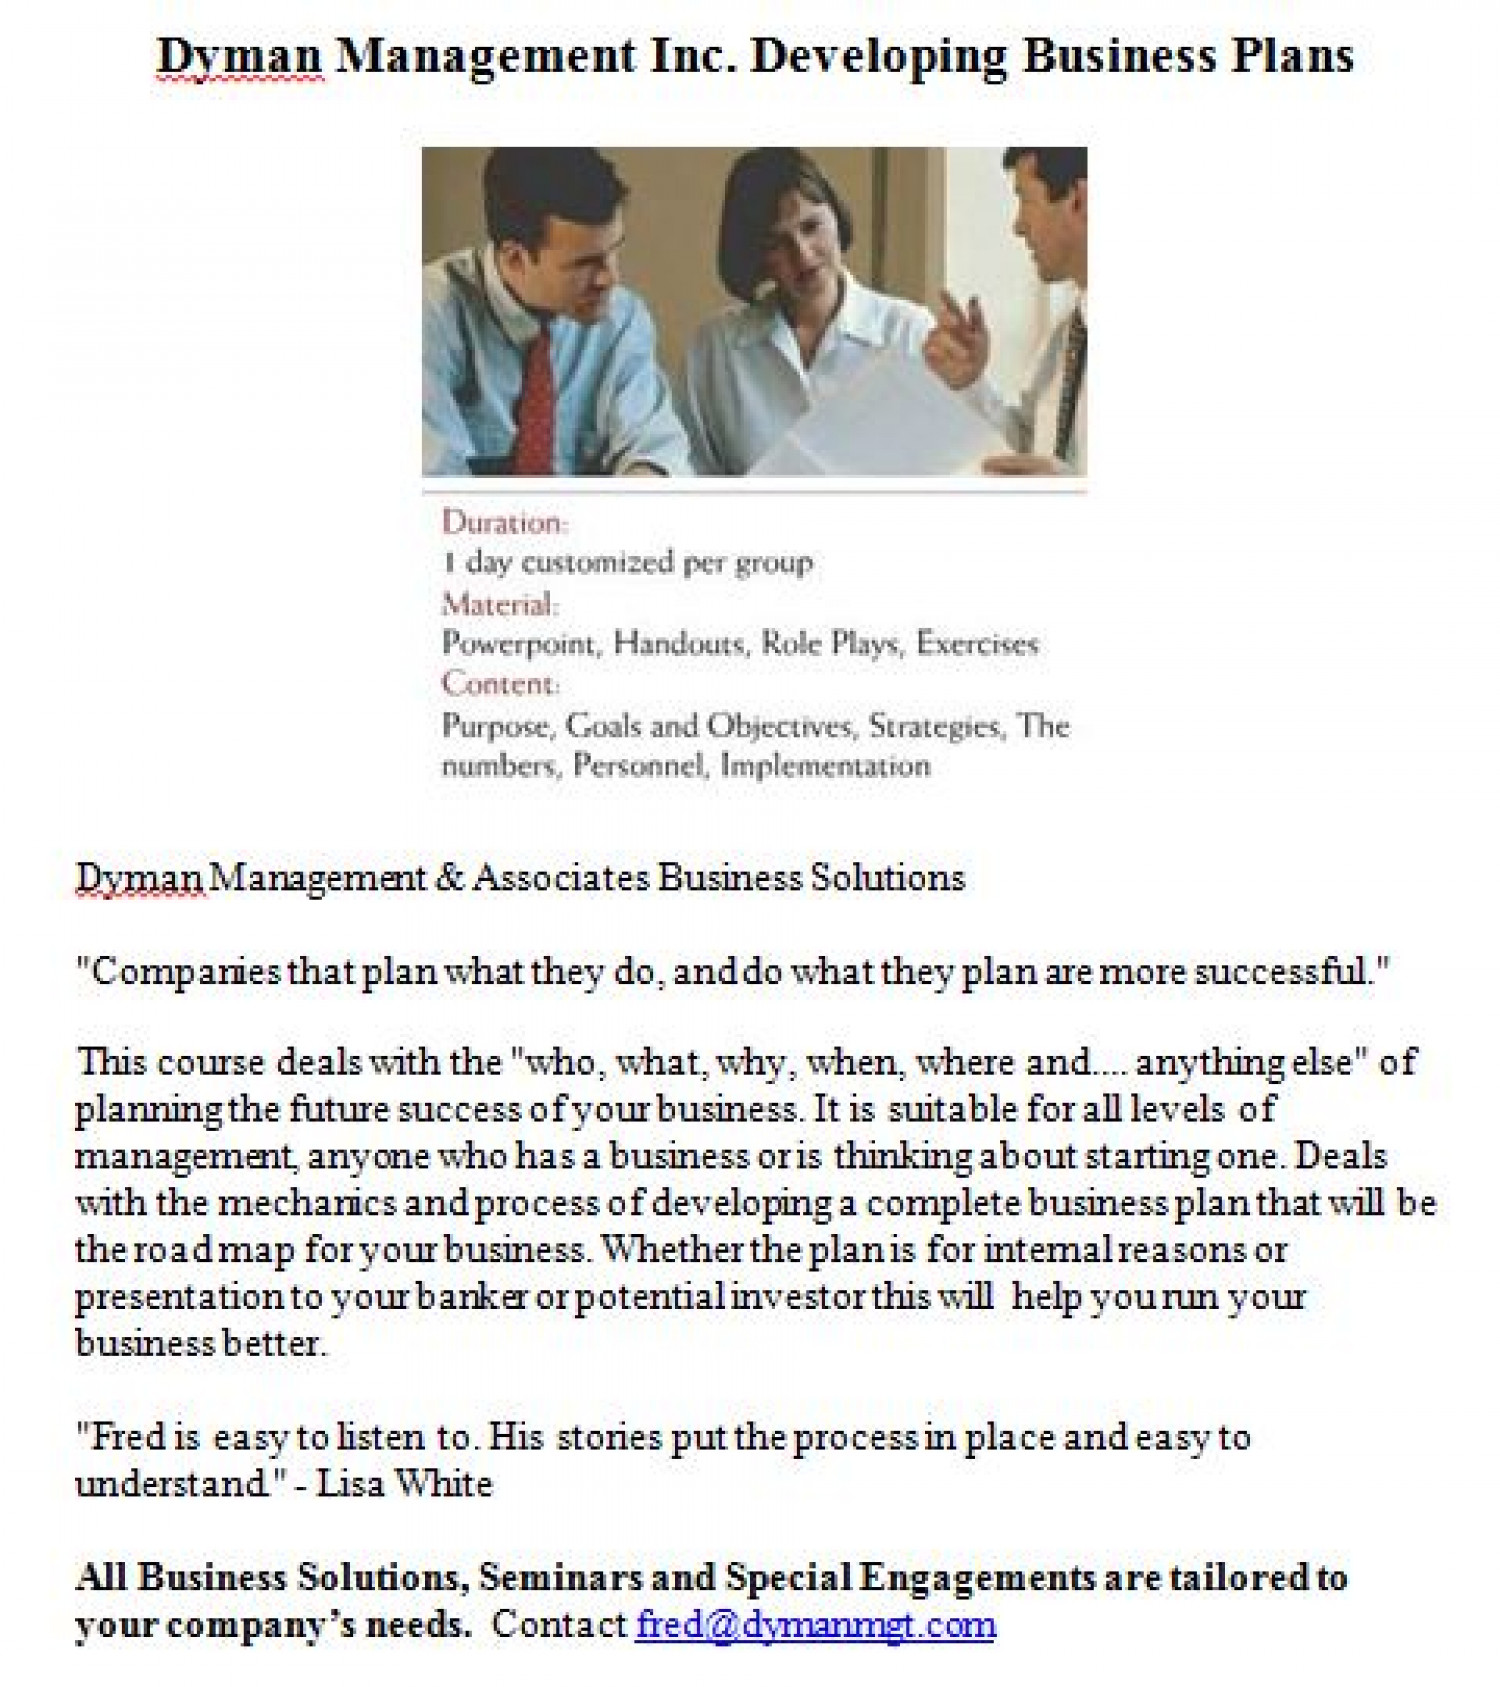 Dyman Management Inc. Developing Business Plans  Infographic